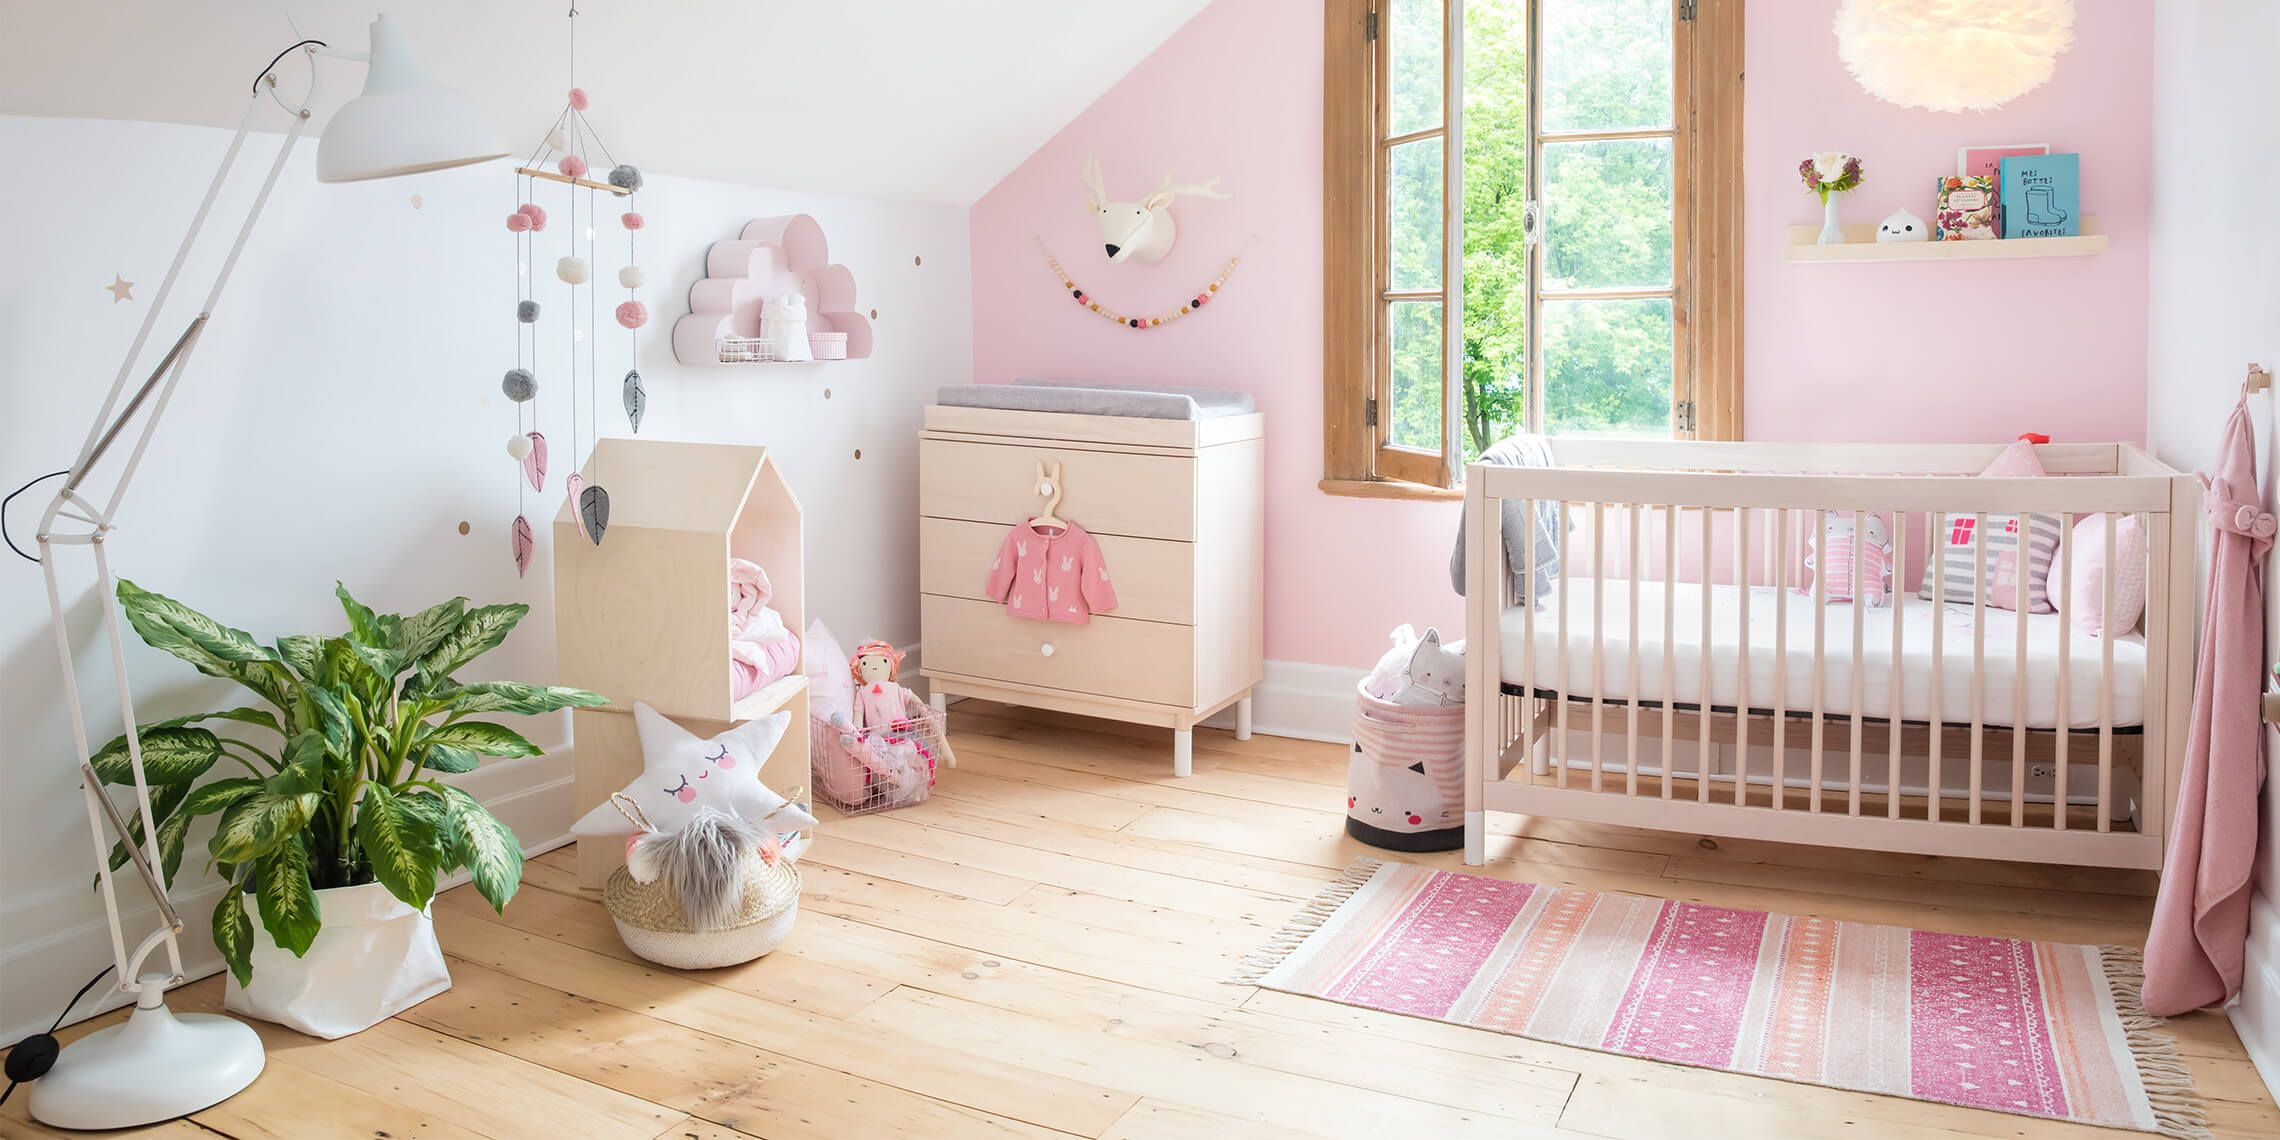 souris la maison excellent souris mini maison pastel with souris la maison cool remarquez les. Black Bedroom Furniture Sets. Home Design Ideas